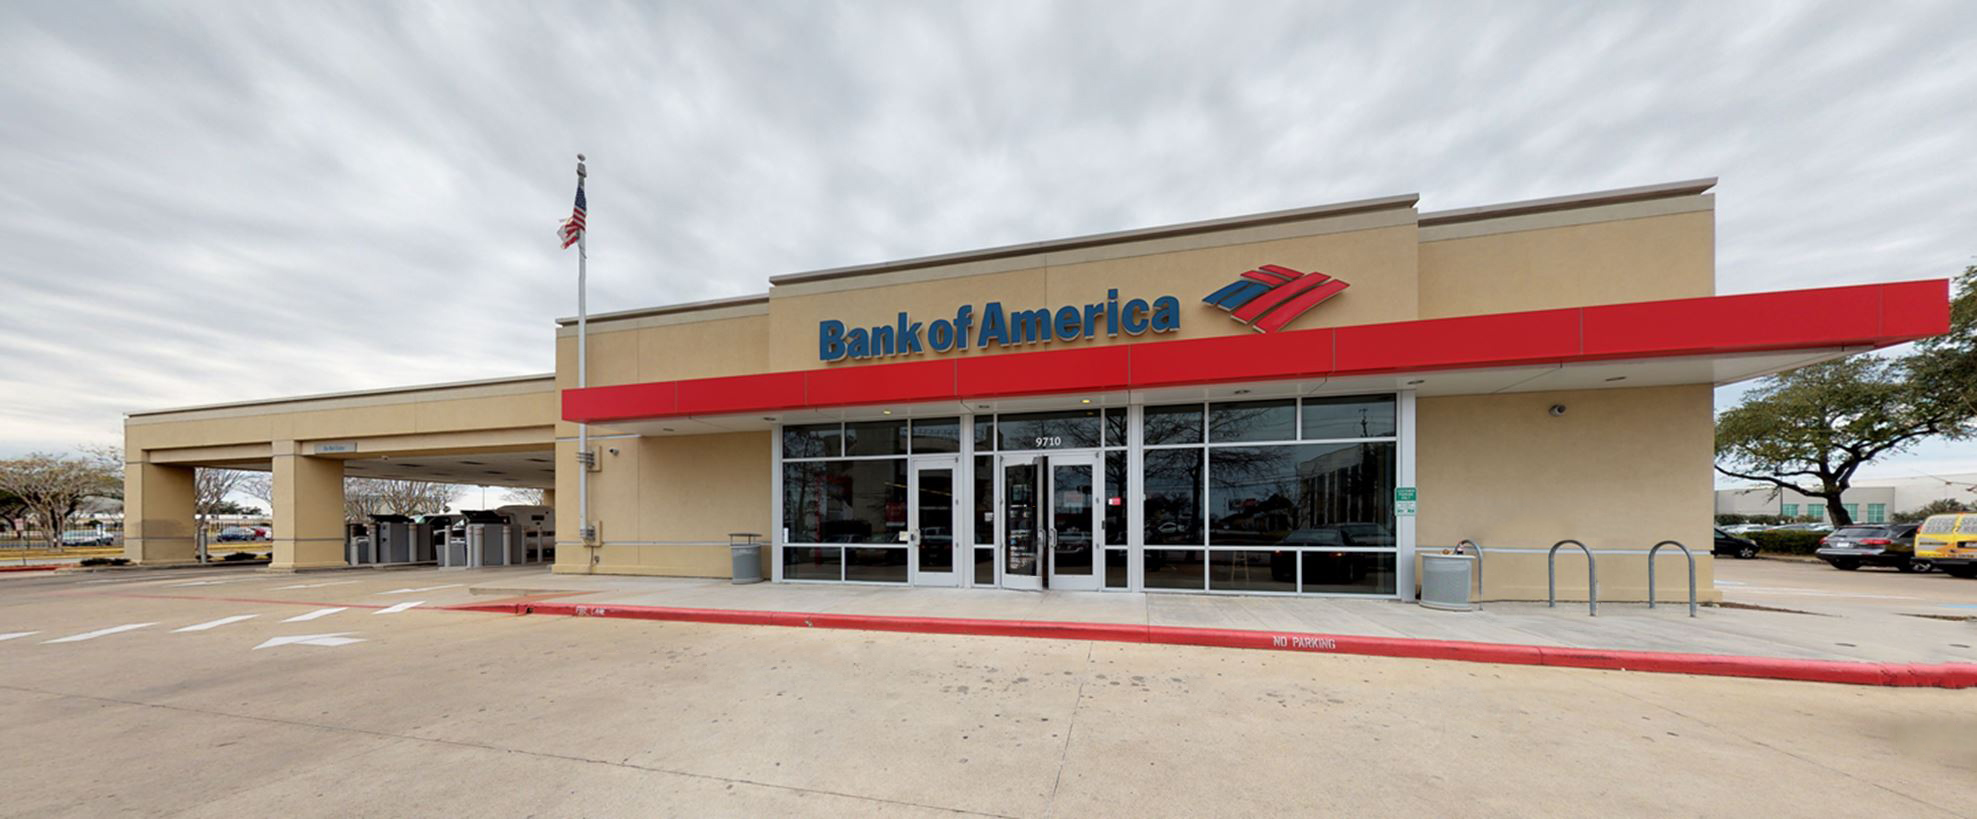 Bank of America financial center with drive-thru ATM and teller | 9710 Bissonnet St, Houston, TX 77036